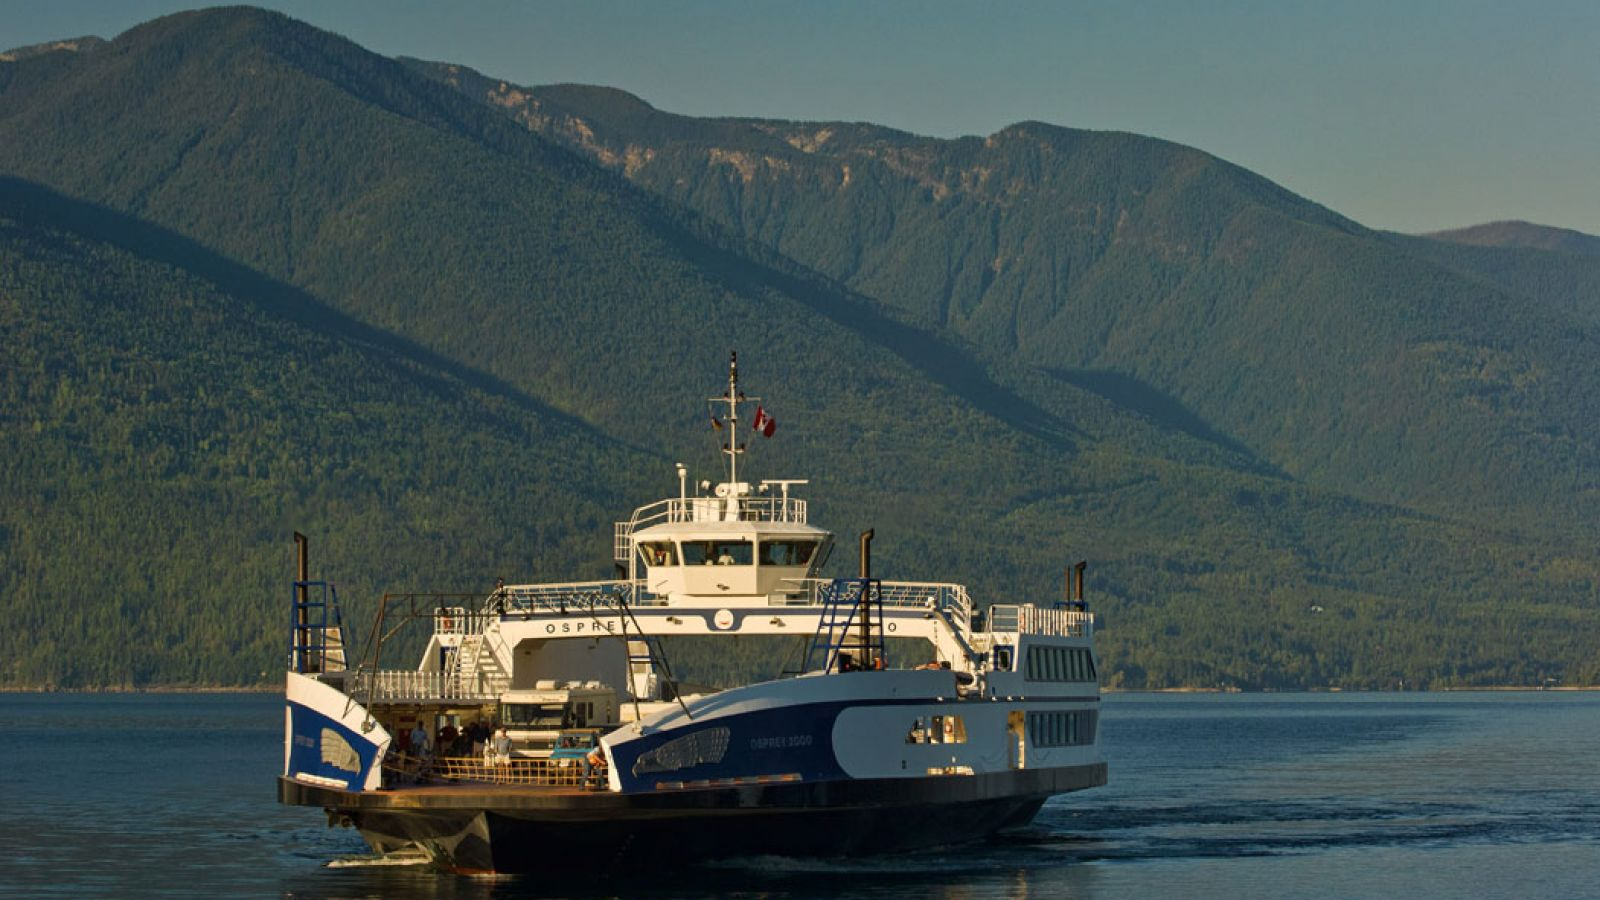 Kootenay Lake and the Osprey Ferry.